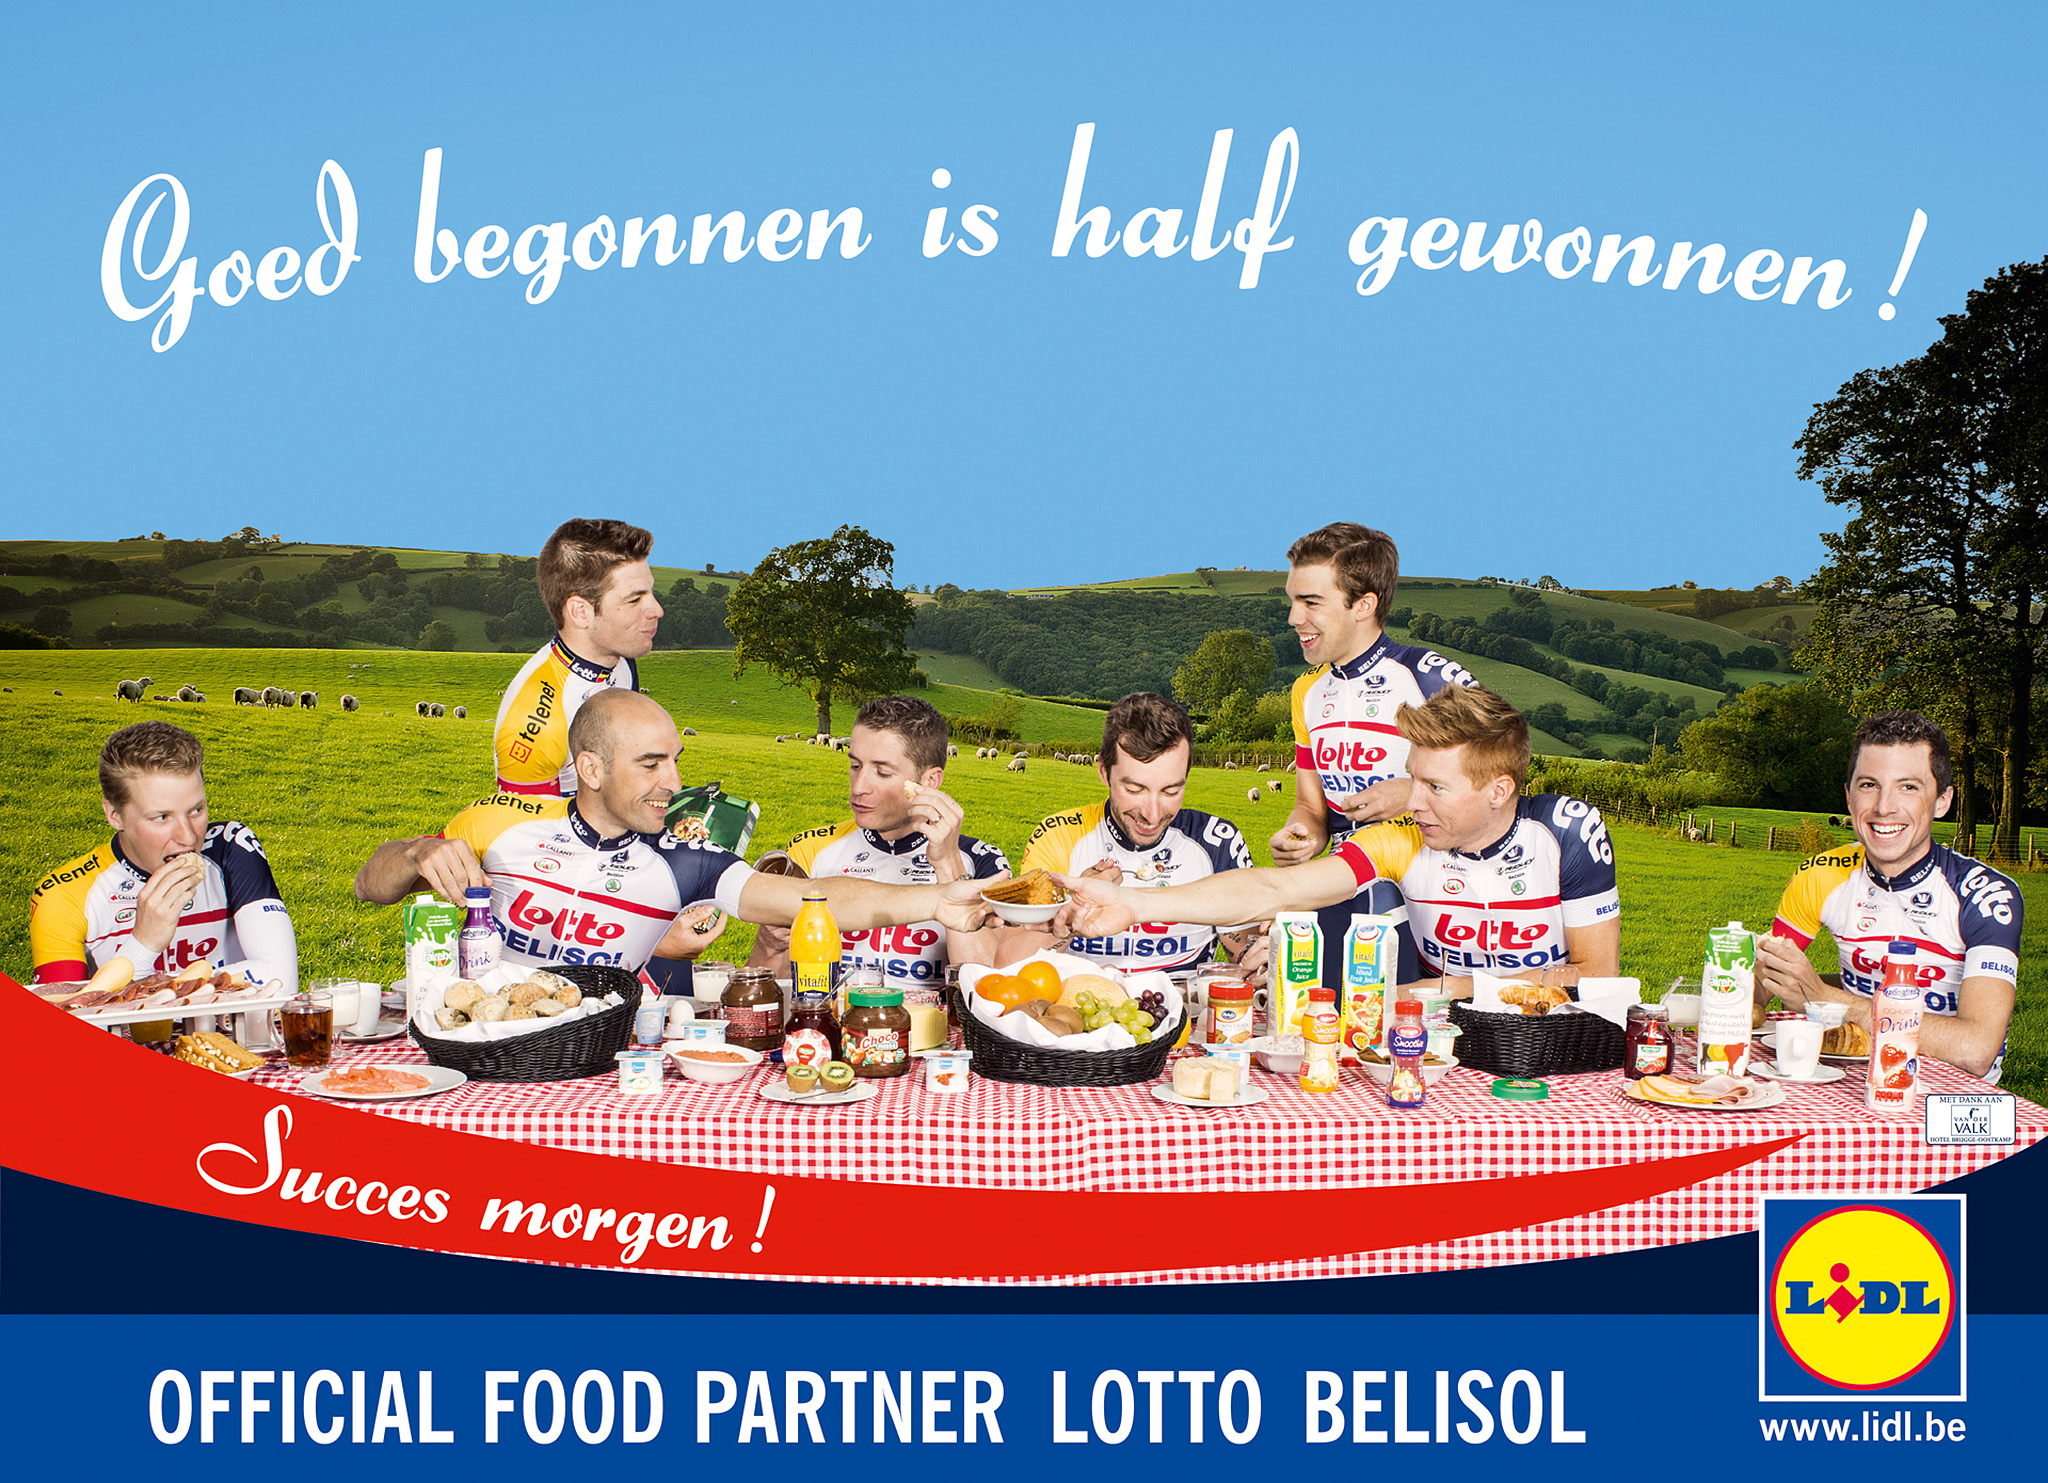 LOTTO_BELISOL_LAST_SUPPER_LAYOUT_PORTFOLIO.jpg